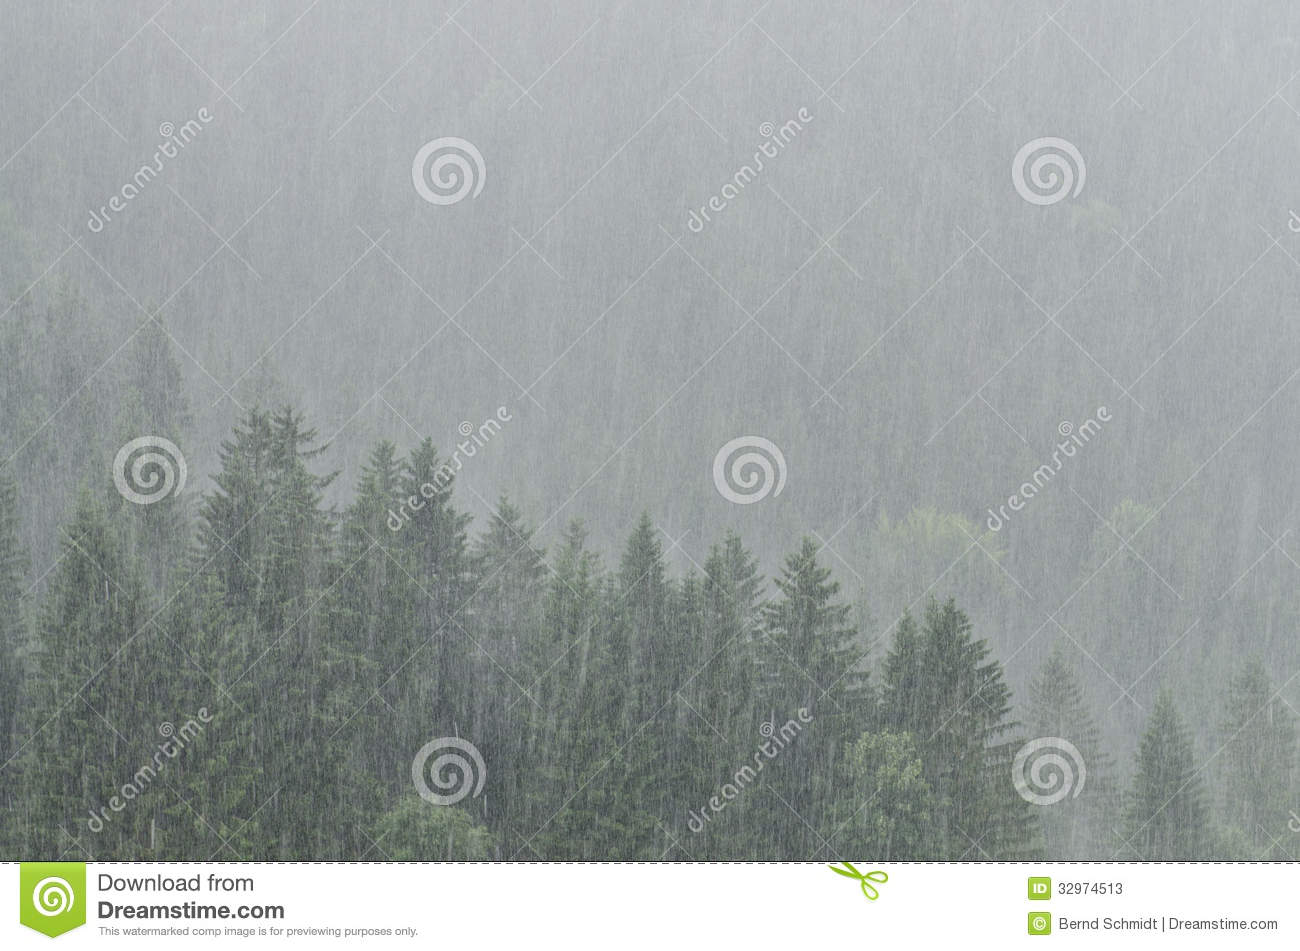 Grey forest with trees in fierce rain shower 1137